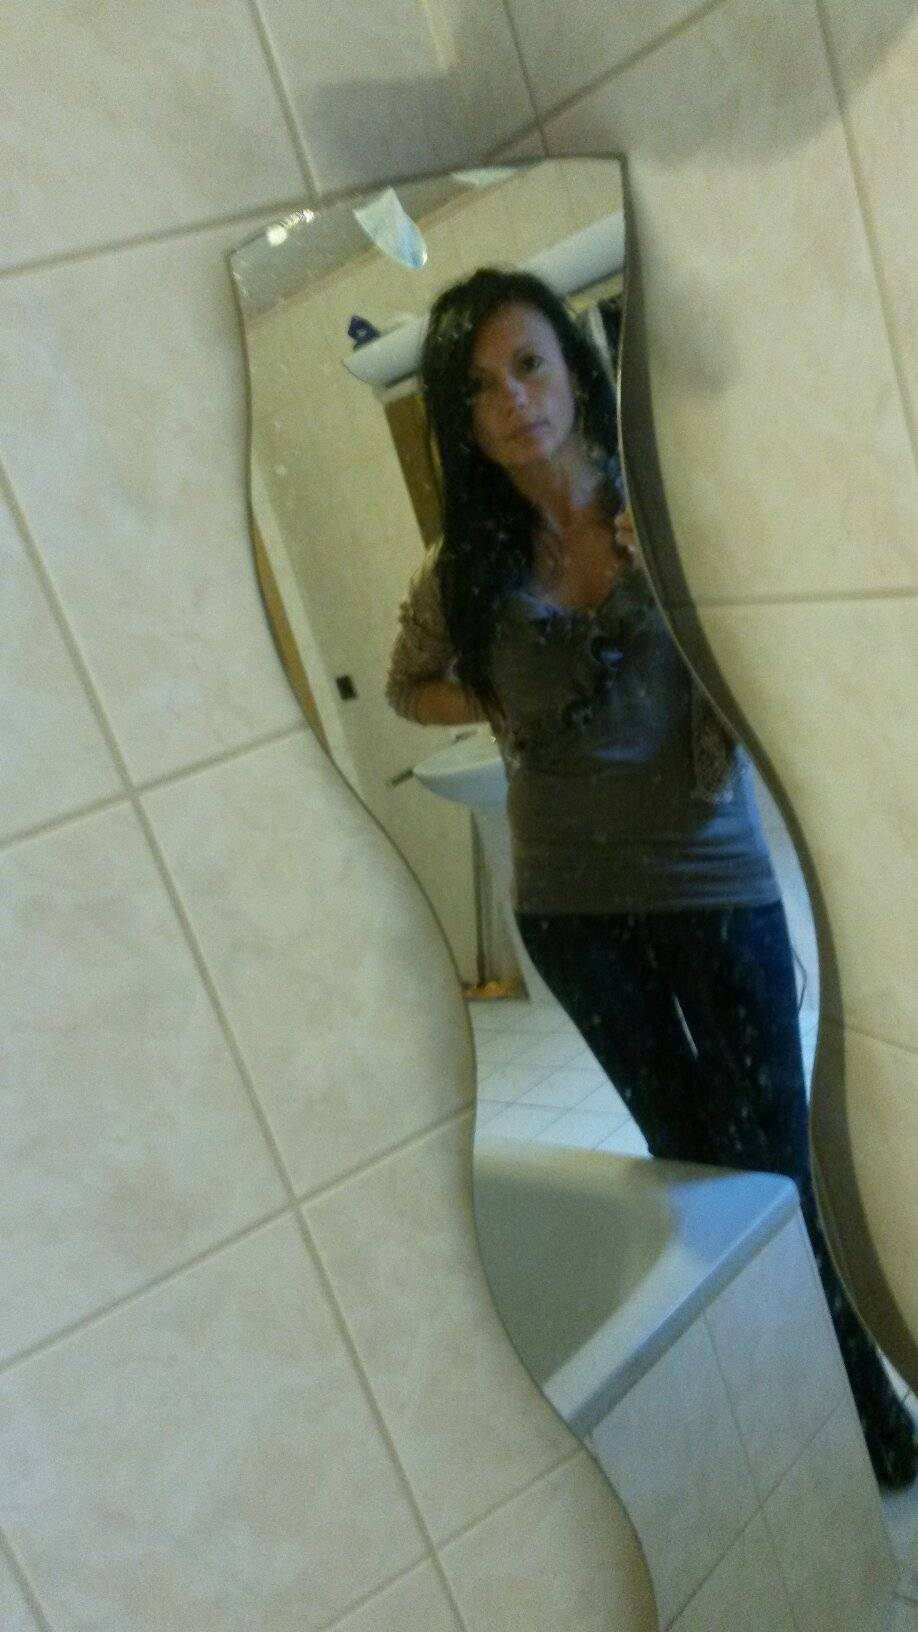 real cummer!!! dating welsh houses babe shes lucky